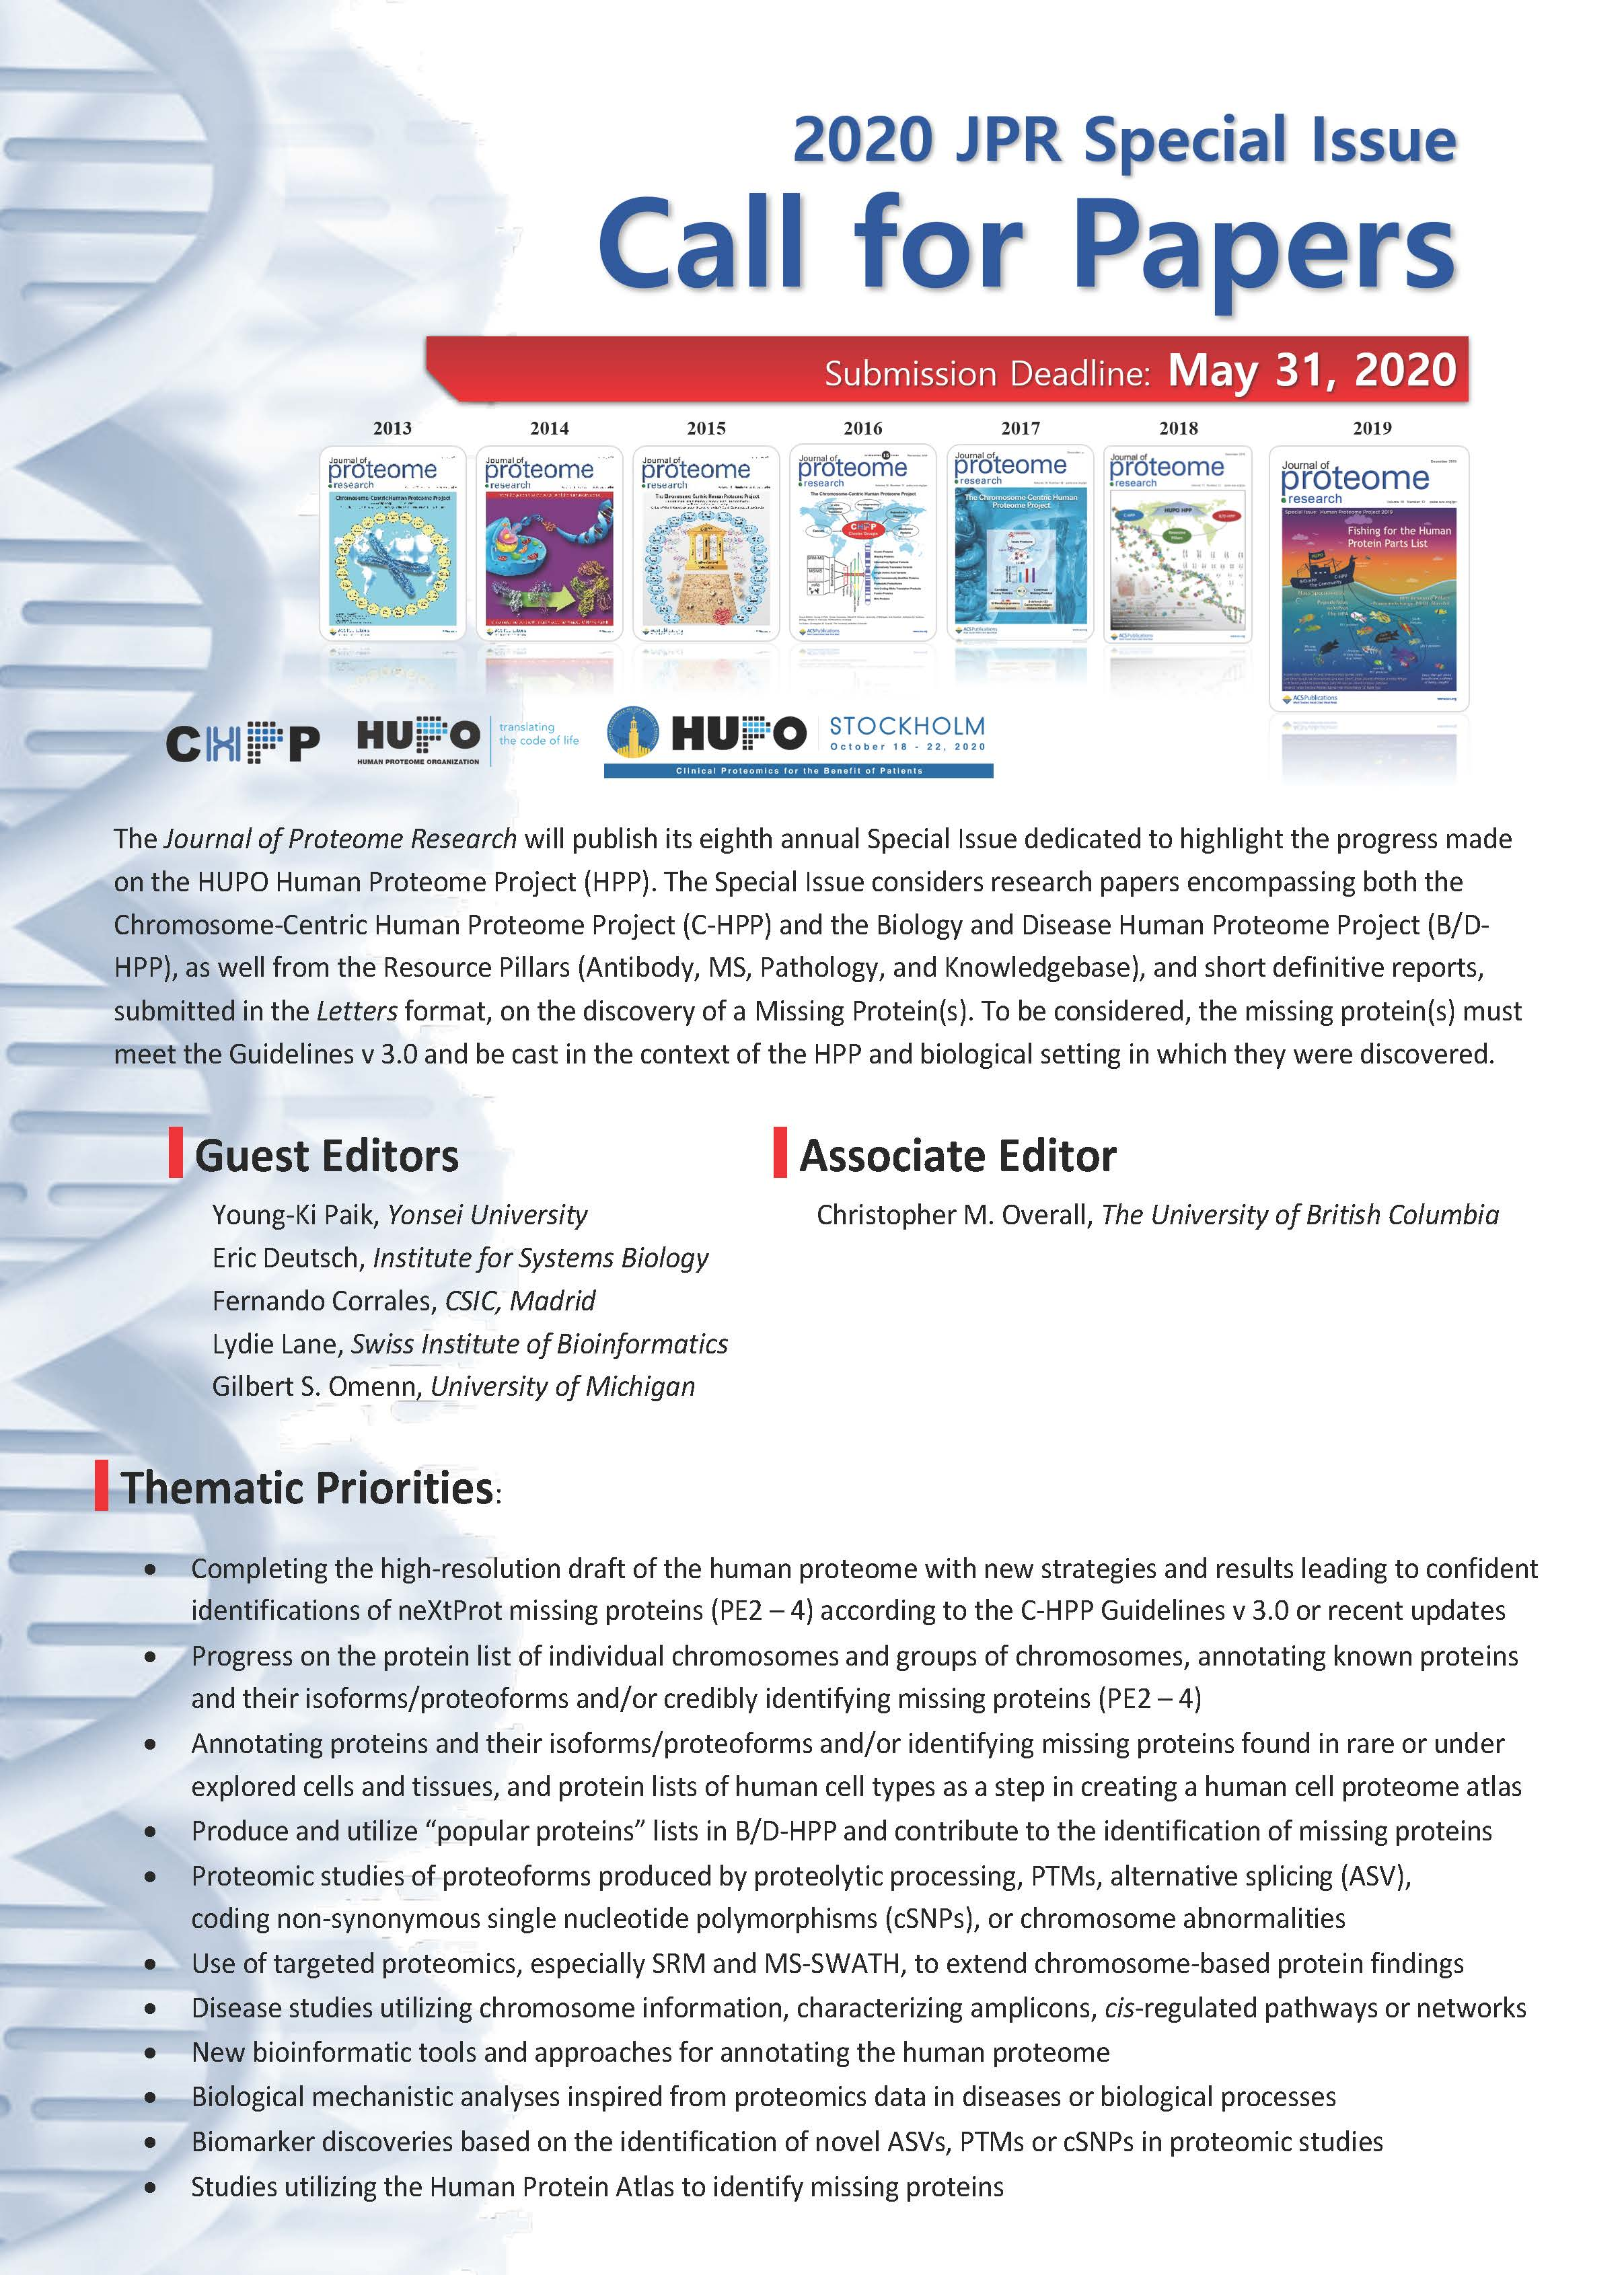 2020 JPR SI Call for Papers_페이지_1.jpg